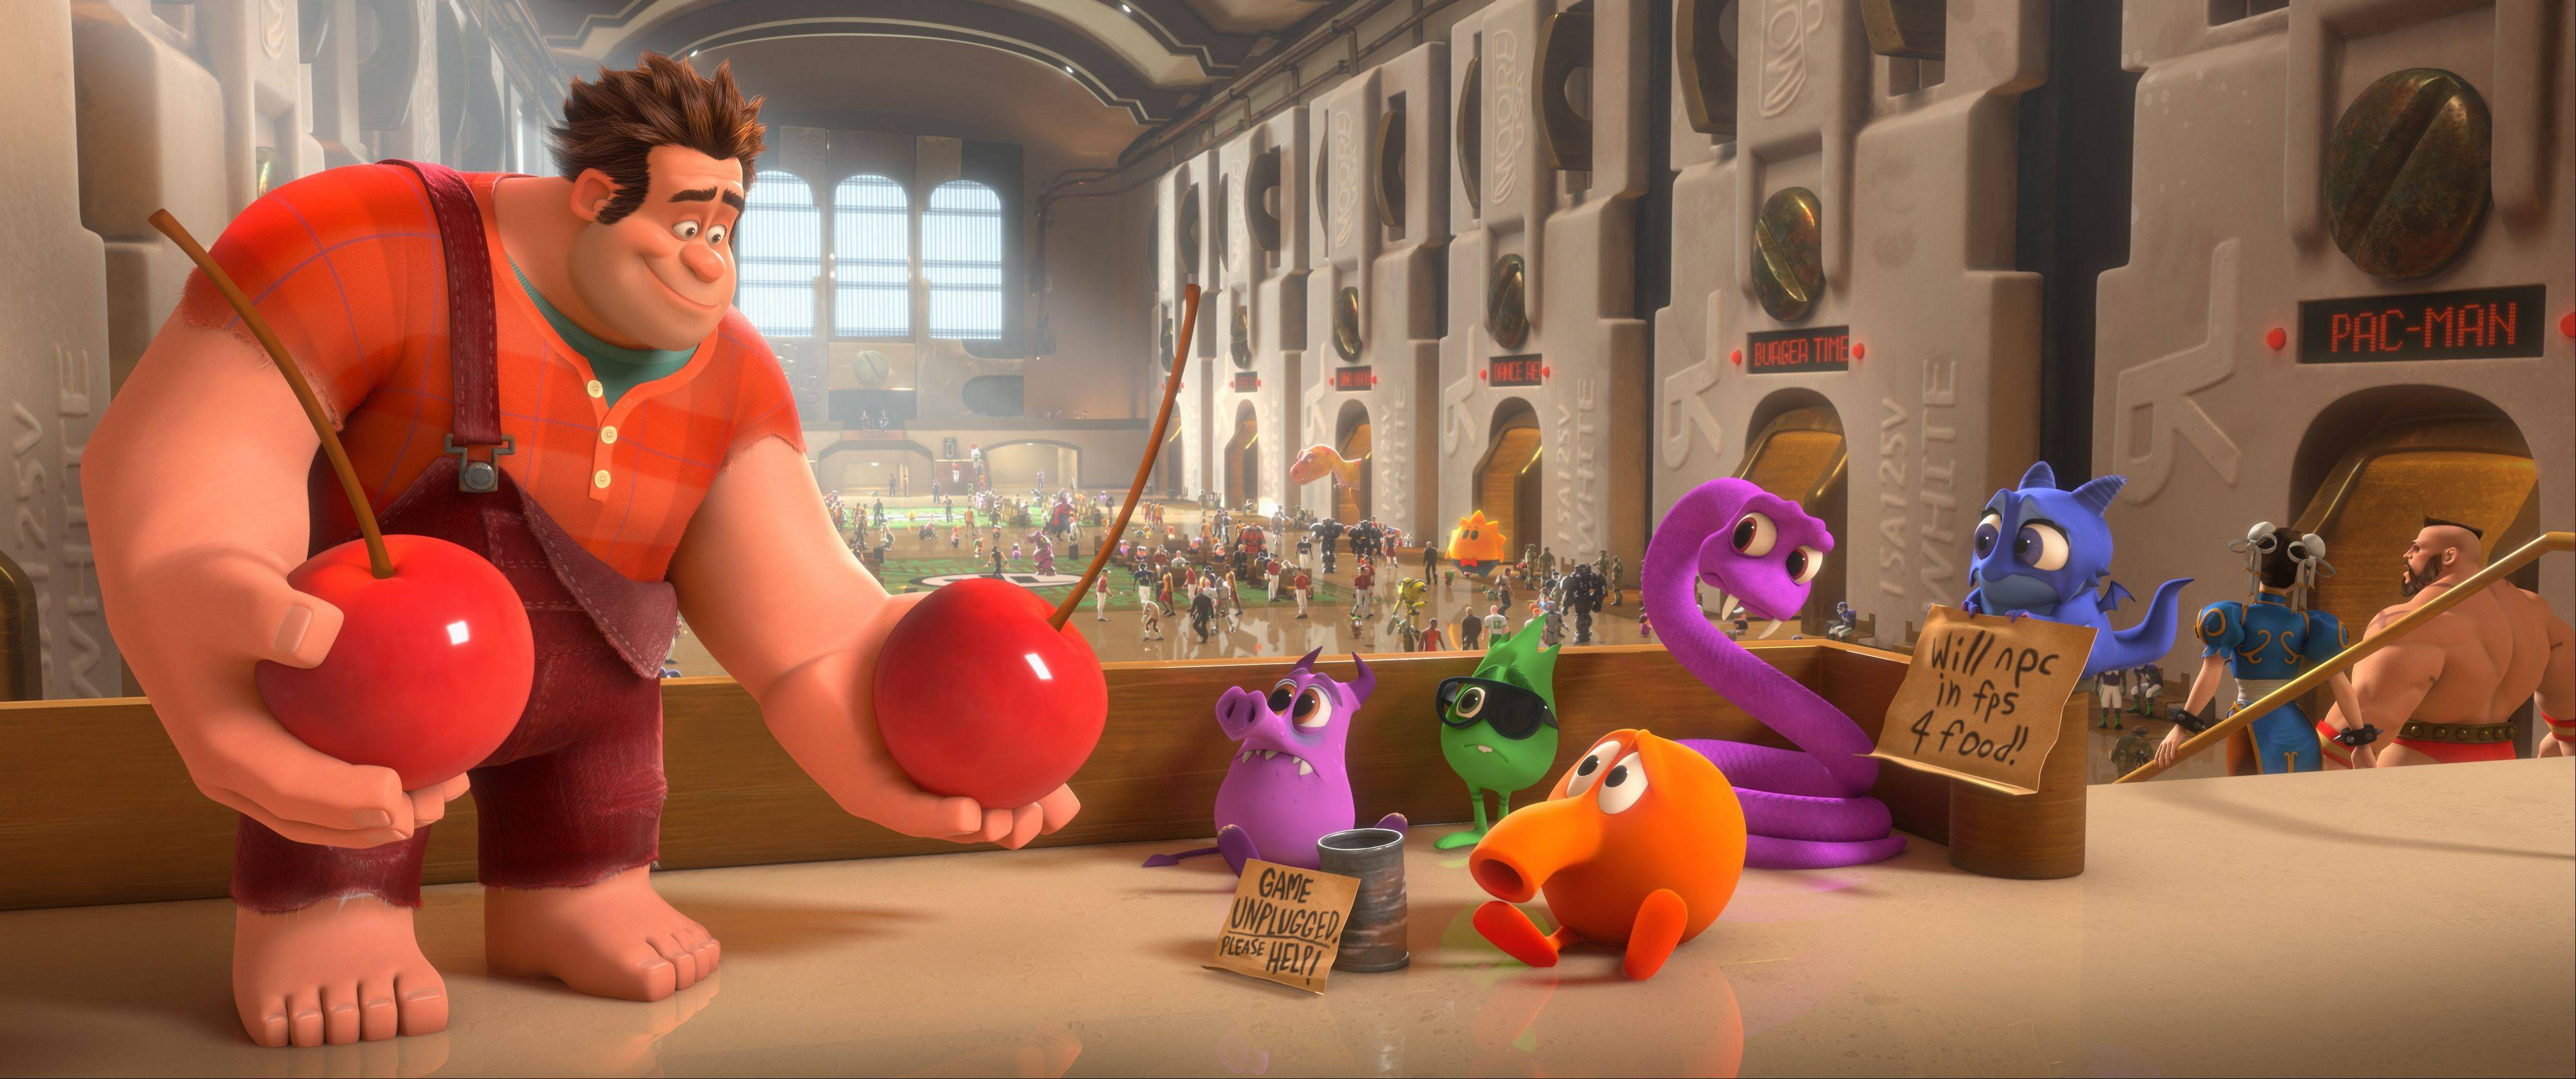 "Ralph the villainous destructor (John C. Reilly) offers up some fruity concessions in Walt Disney's 3-D animated comedy ""Wreck-It Ralph."""